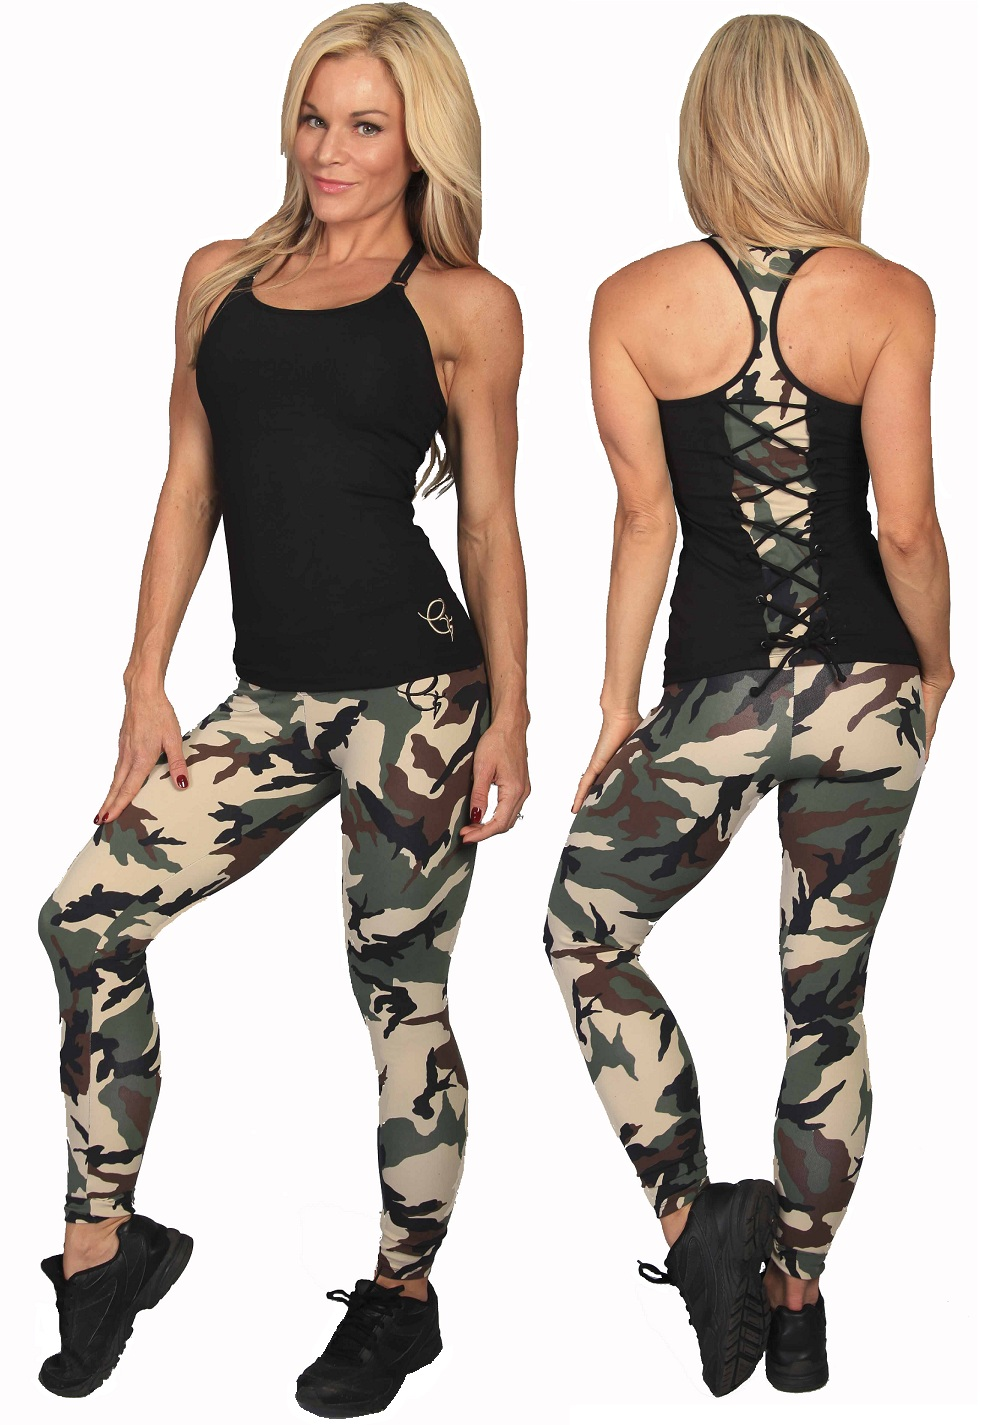 womens exercise clothing cheap photo - 1